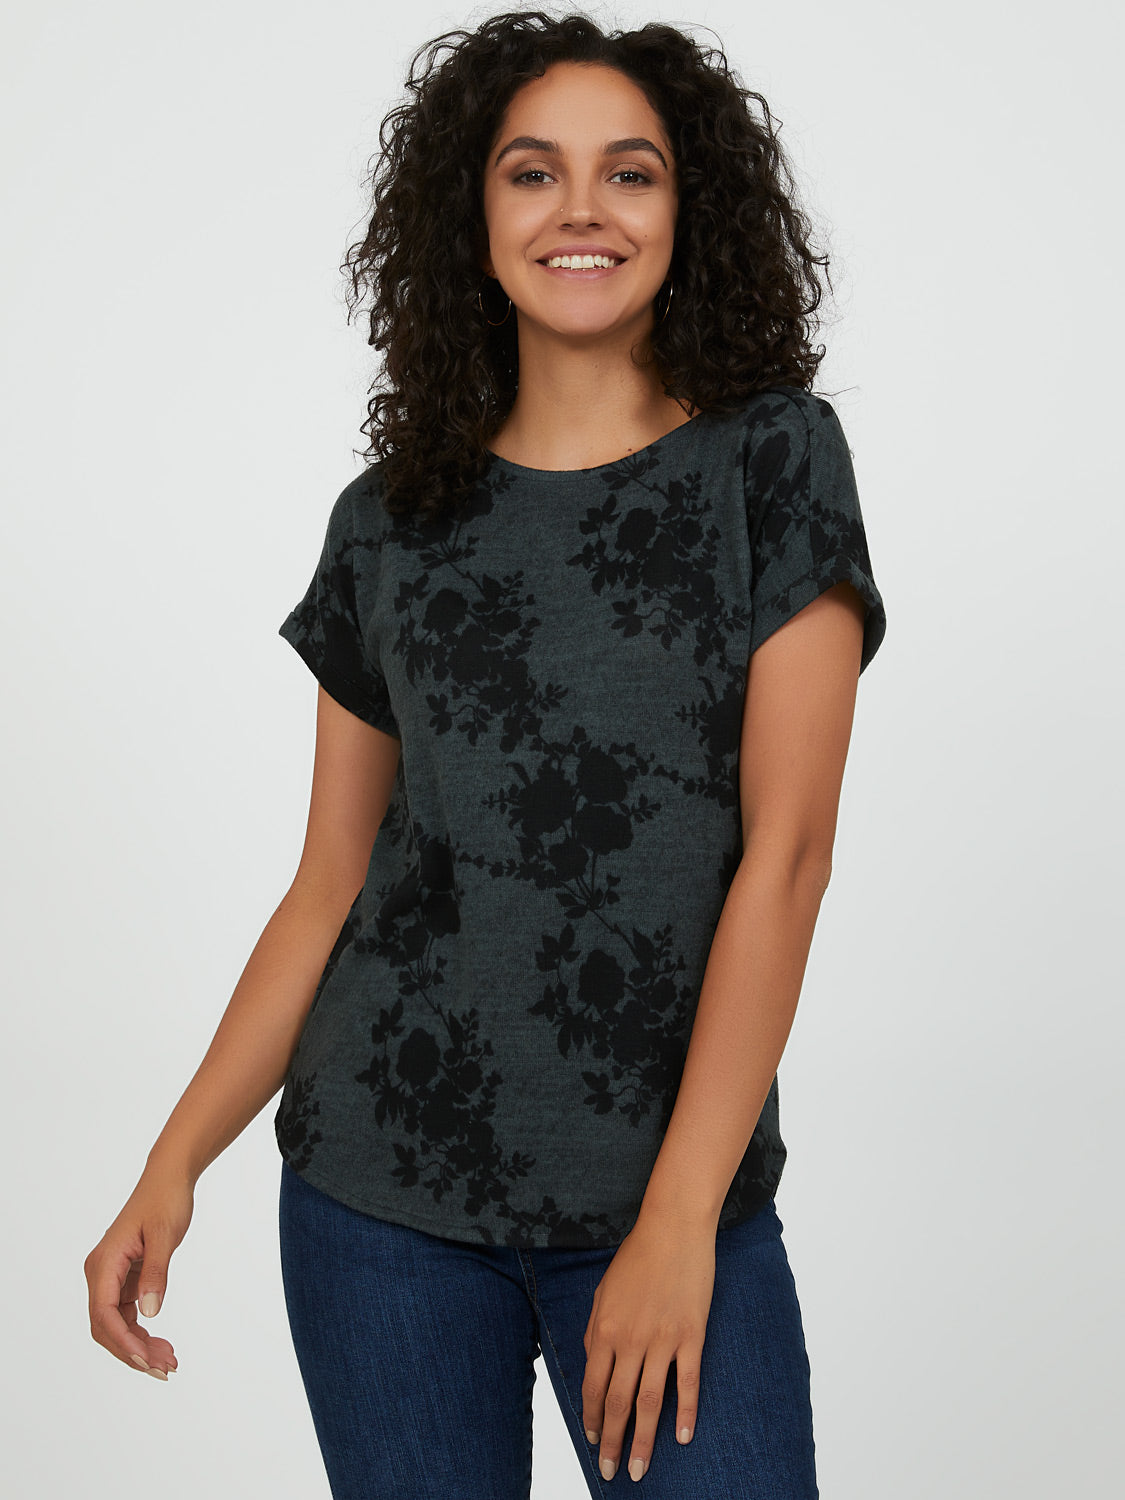 Cute Short Sleeve Printed Tee